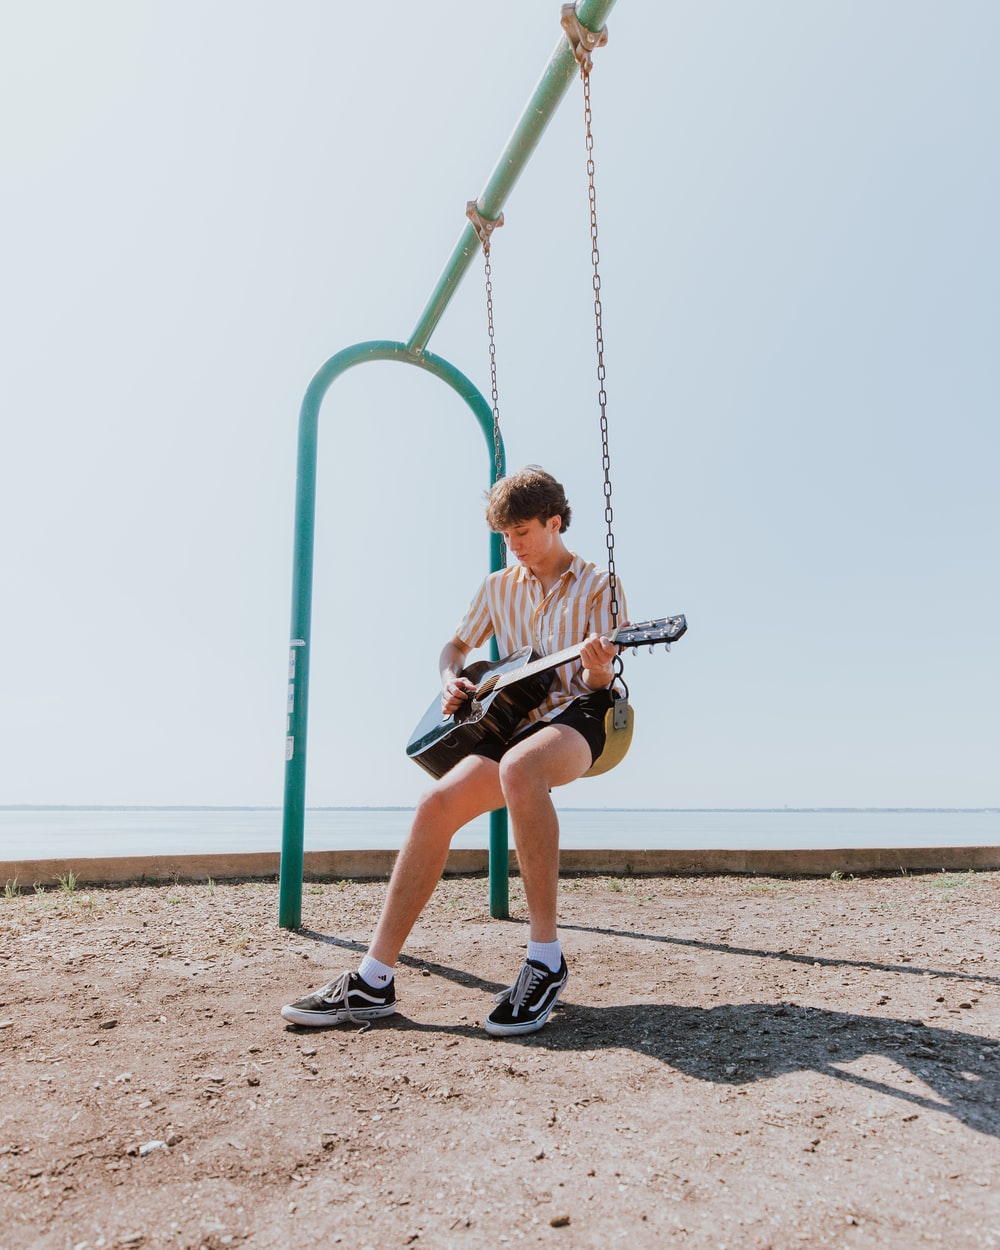 man in white t-shirt and red shorts sitting on green metal swing during daytime